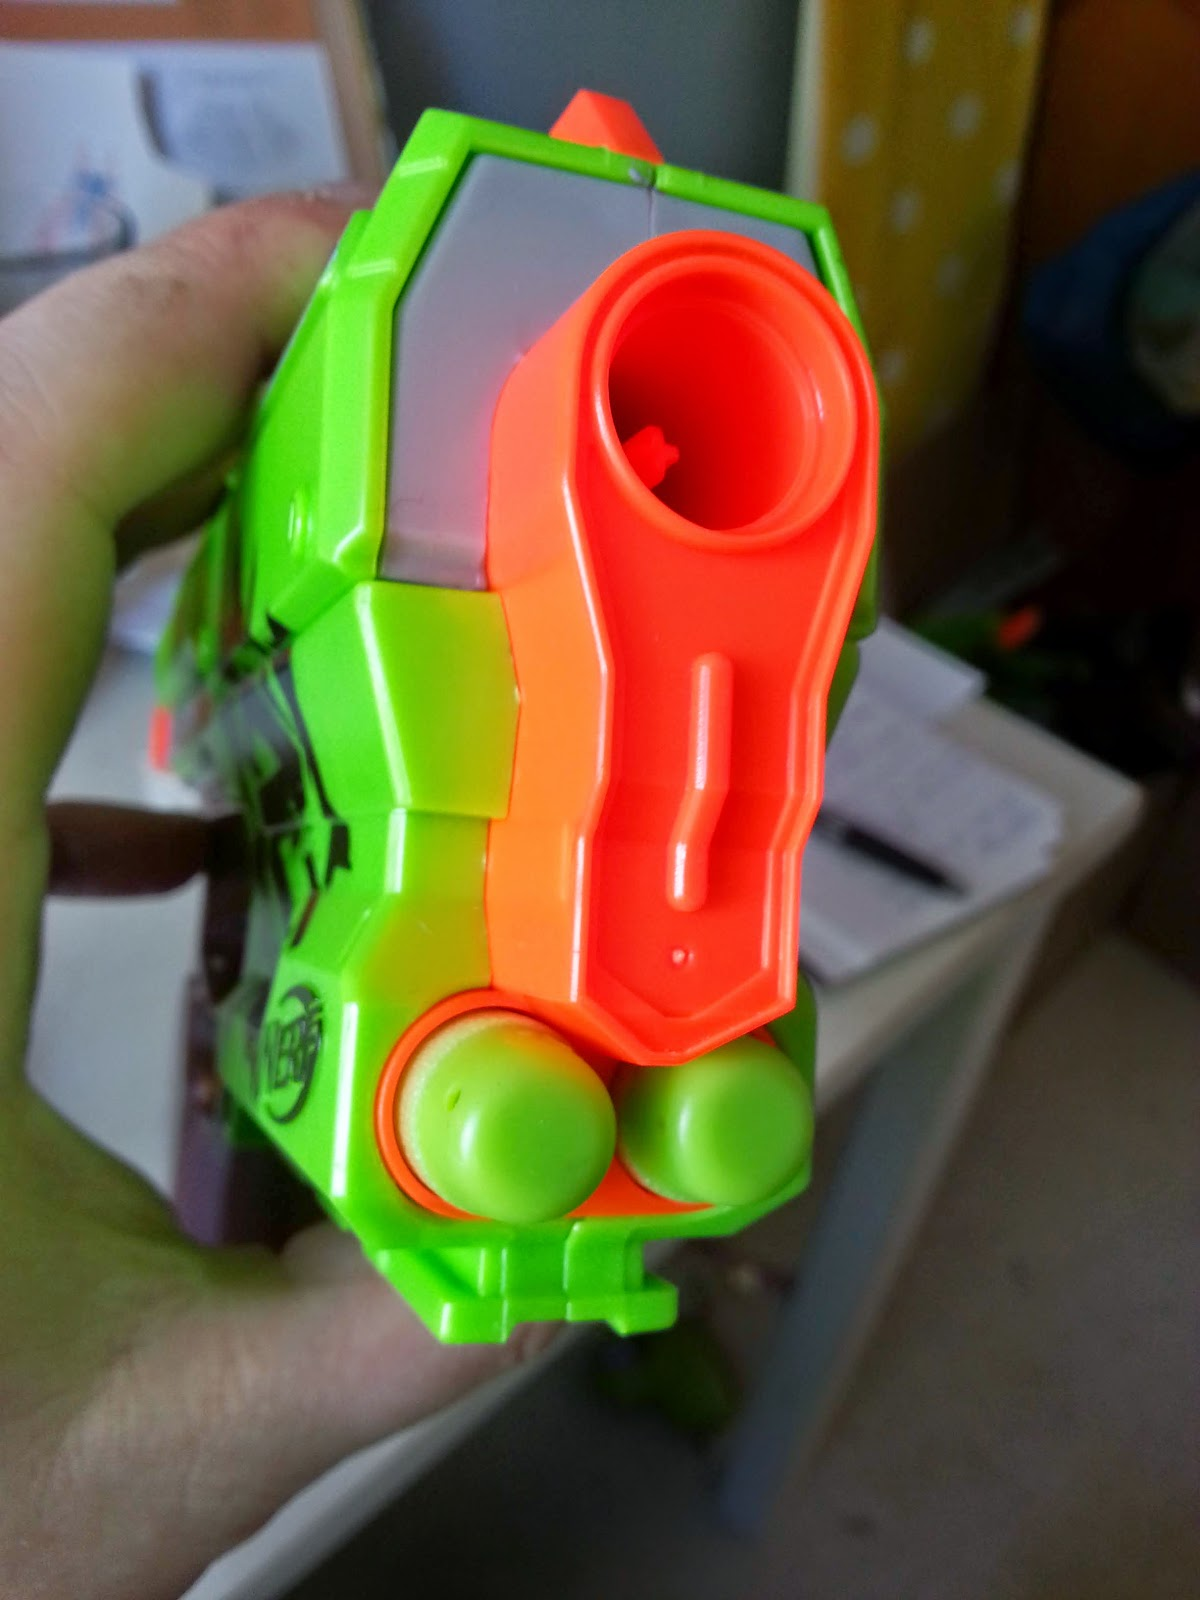 So it really is top marks all round for the Nerf Zombie Strike Sidestrike and we would go so far as to say that this plucky little blaster is one of our